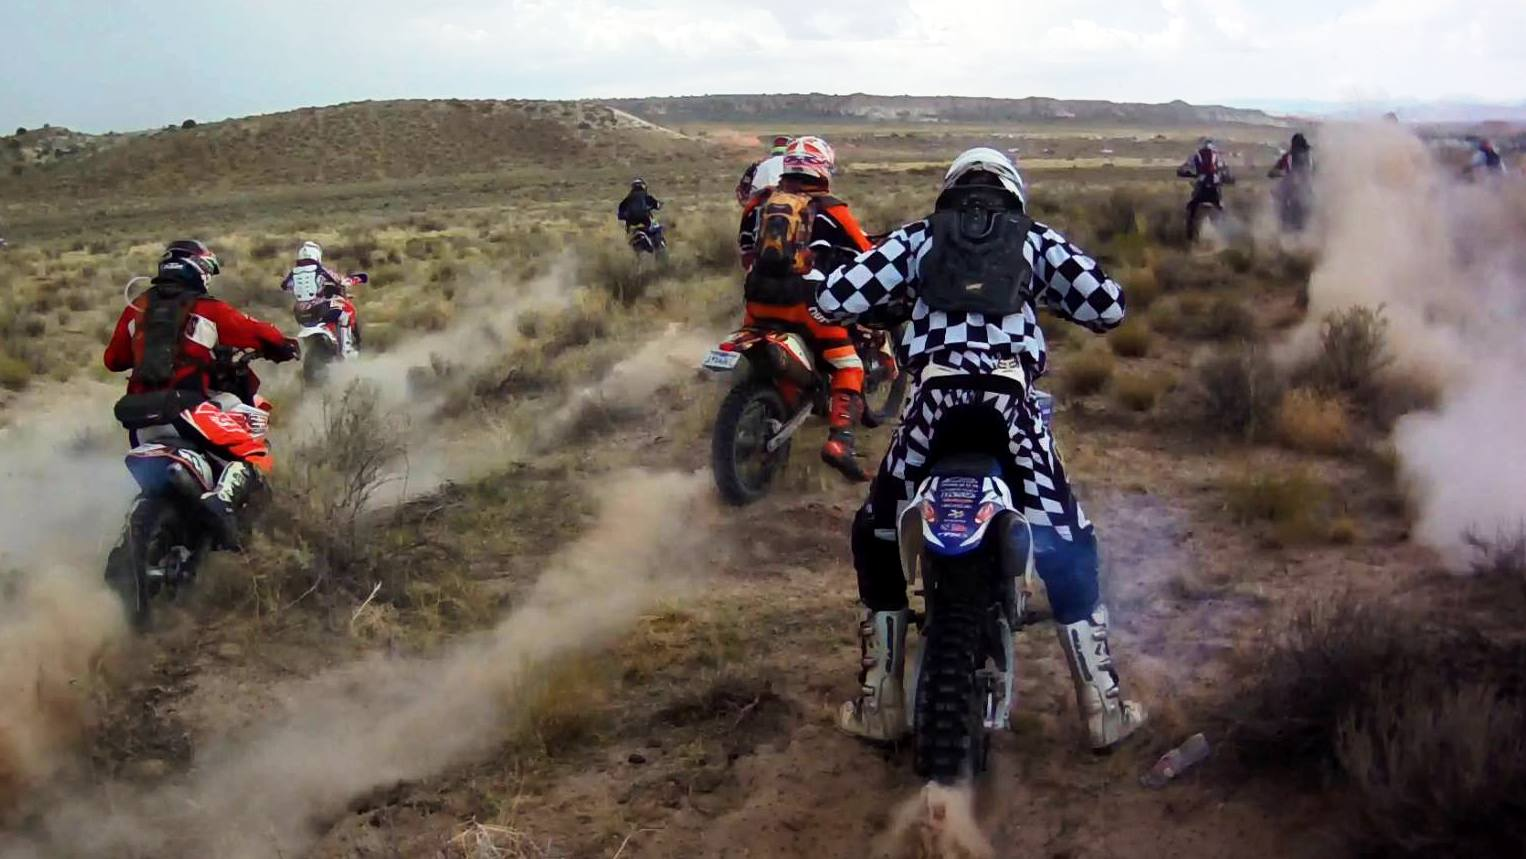 Local riders shine in national racing event